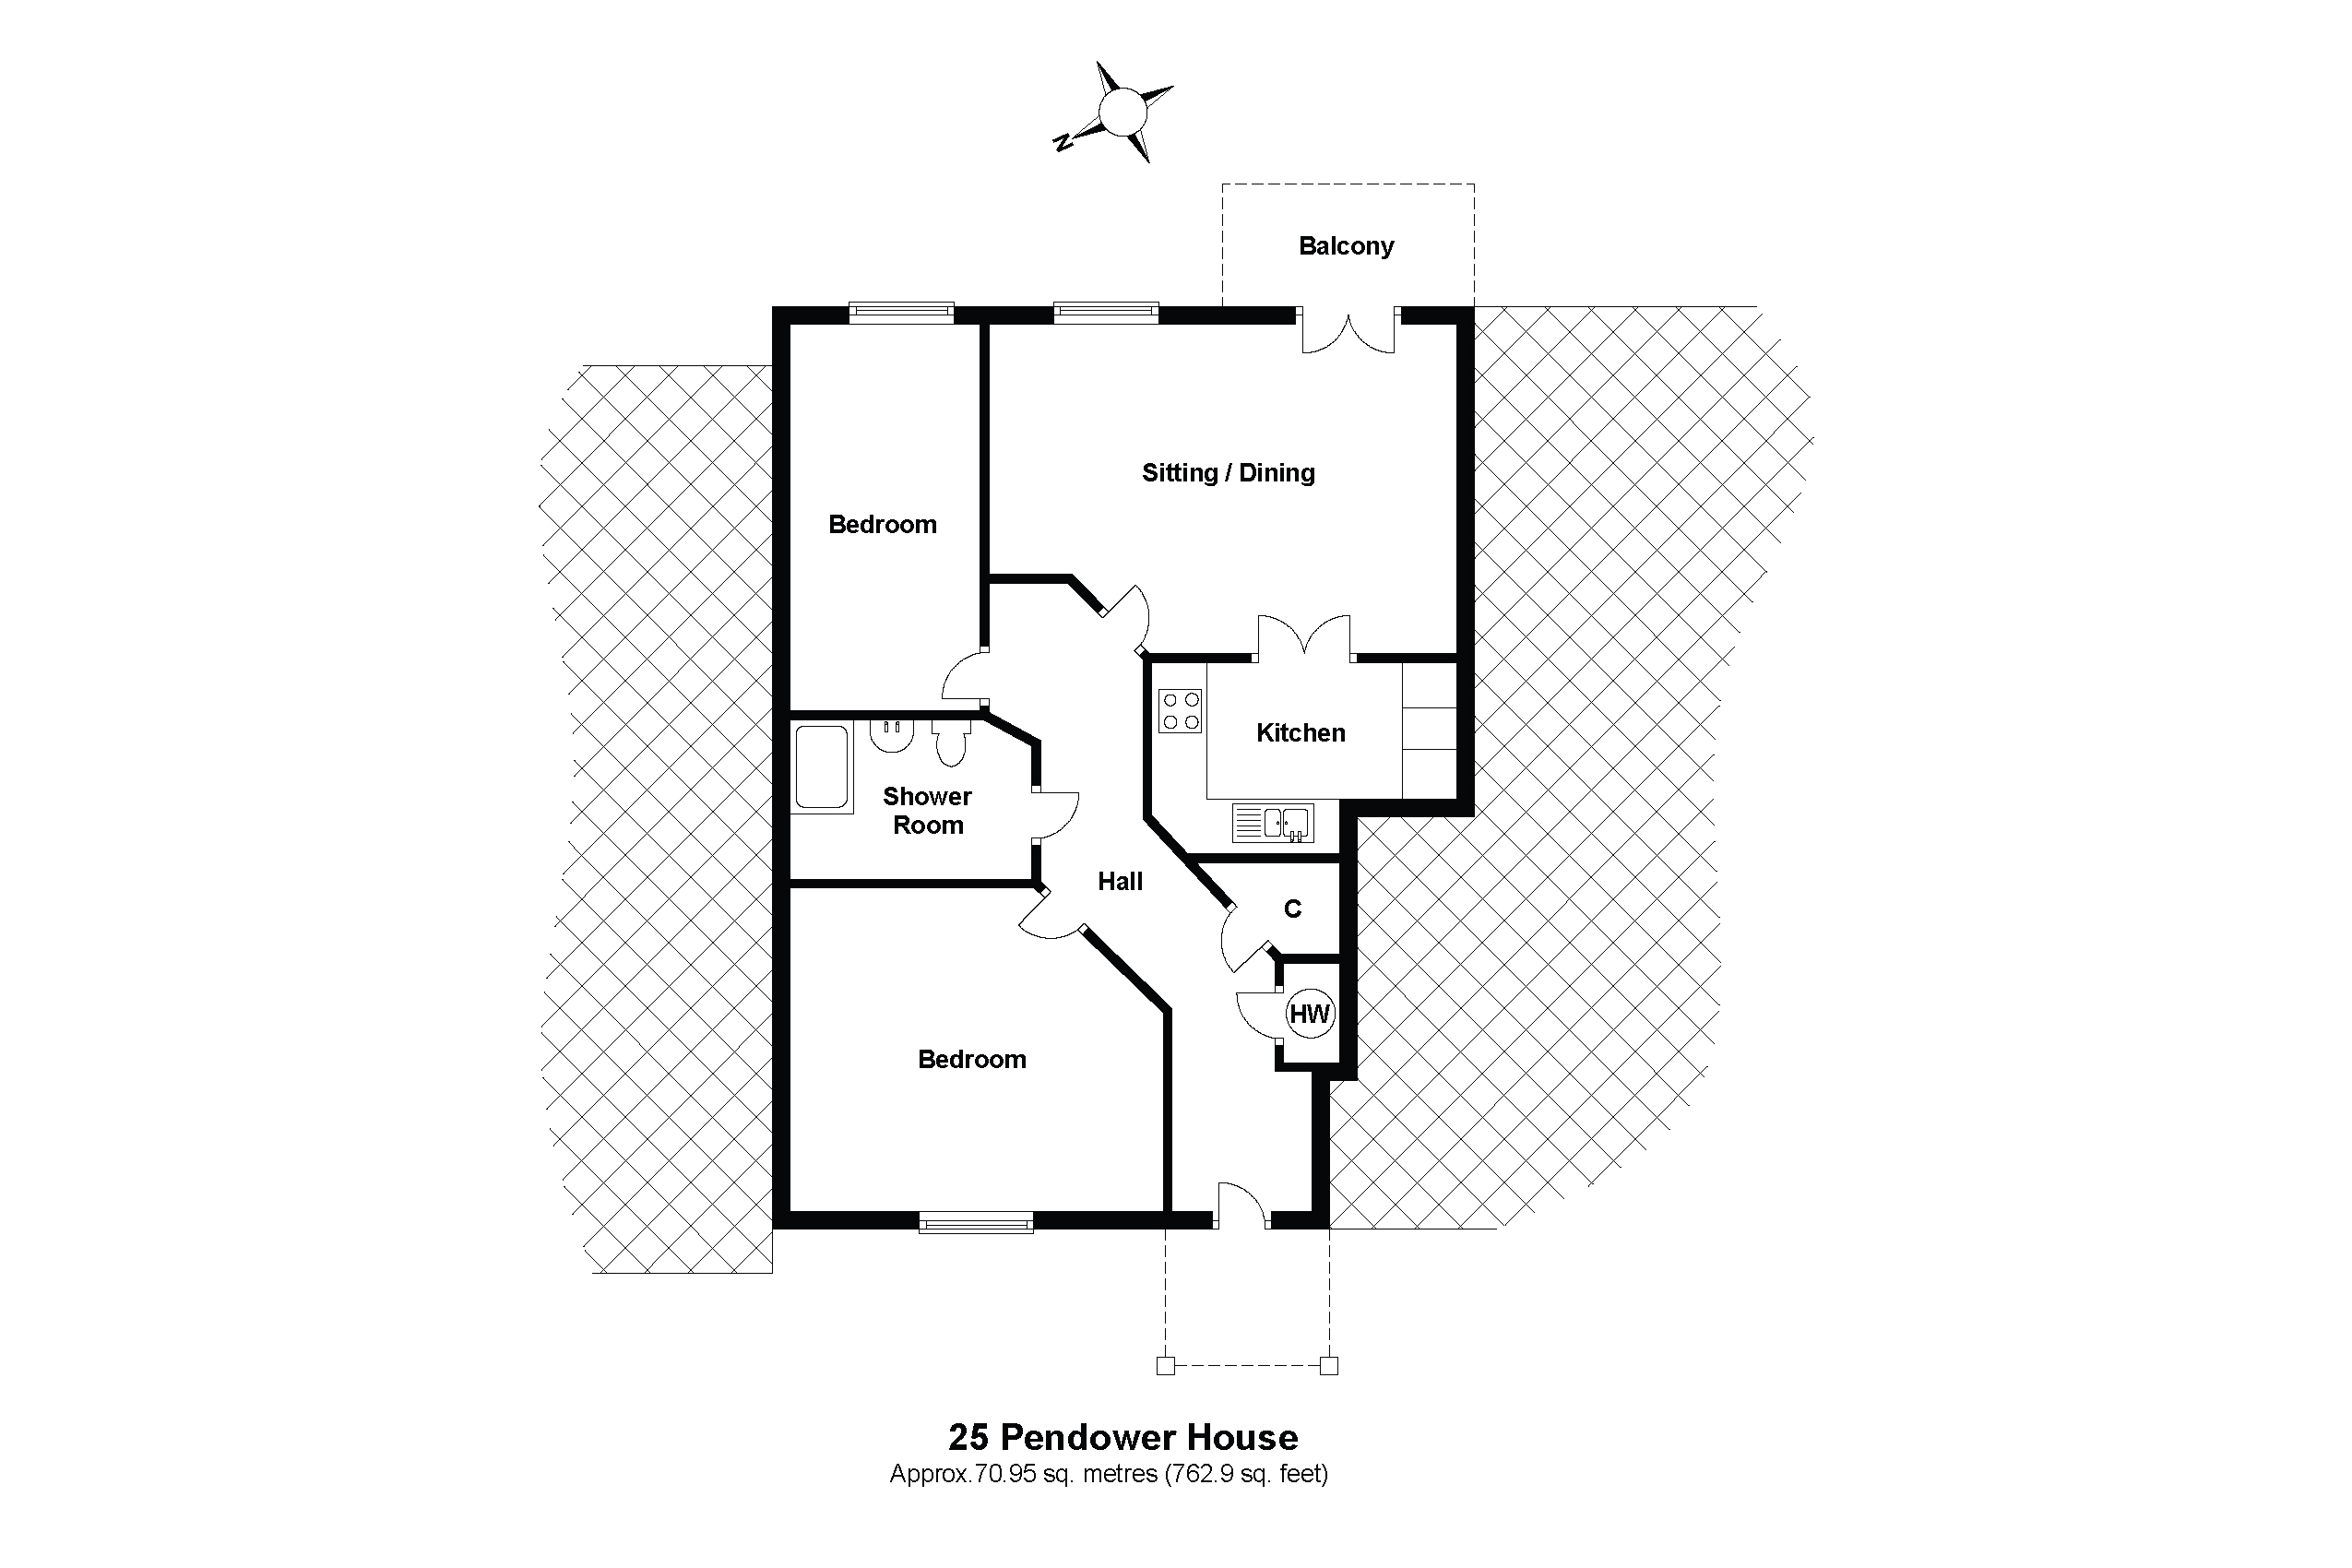 25 Pendower House Floorplan